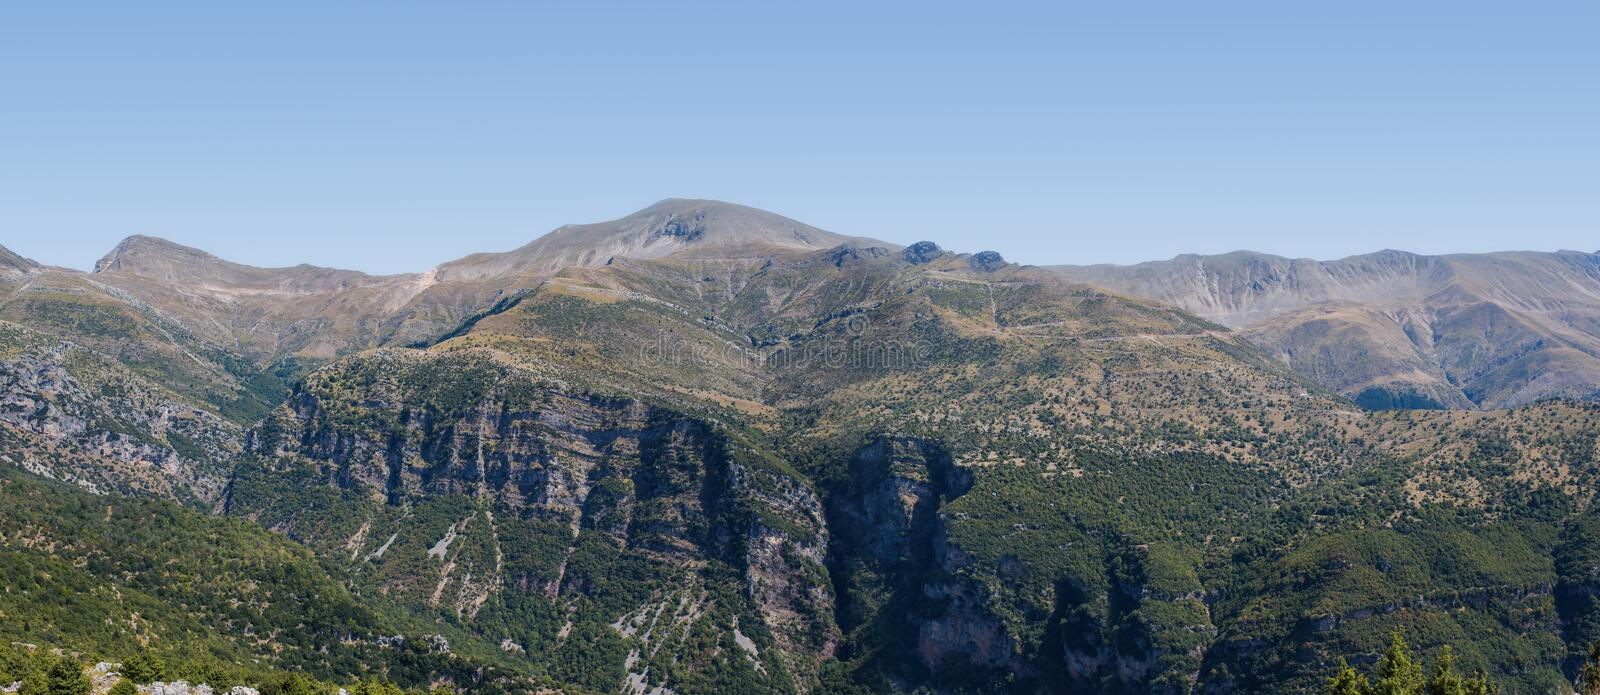 Banner of Panoramic view of mountain in National Park of Tzoumerka, Greece Epirus region. Mountain royalty free stock images